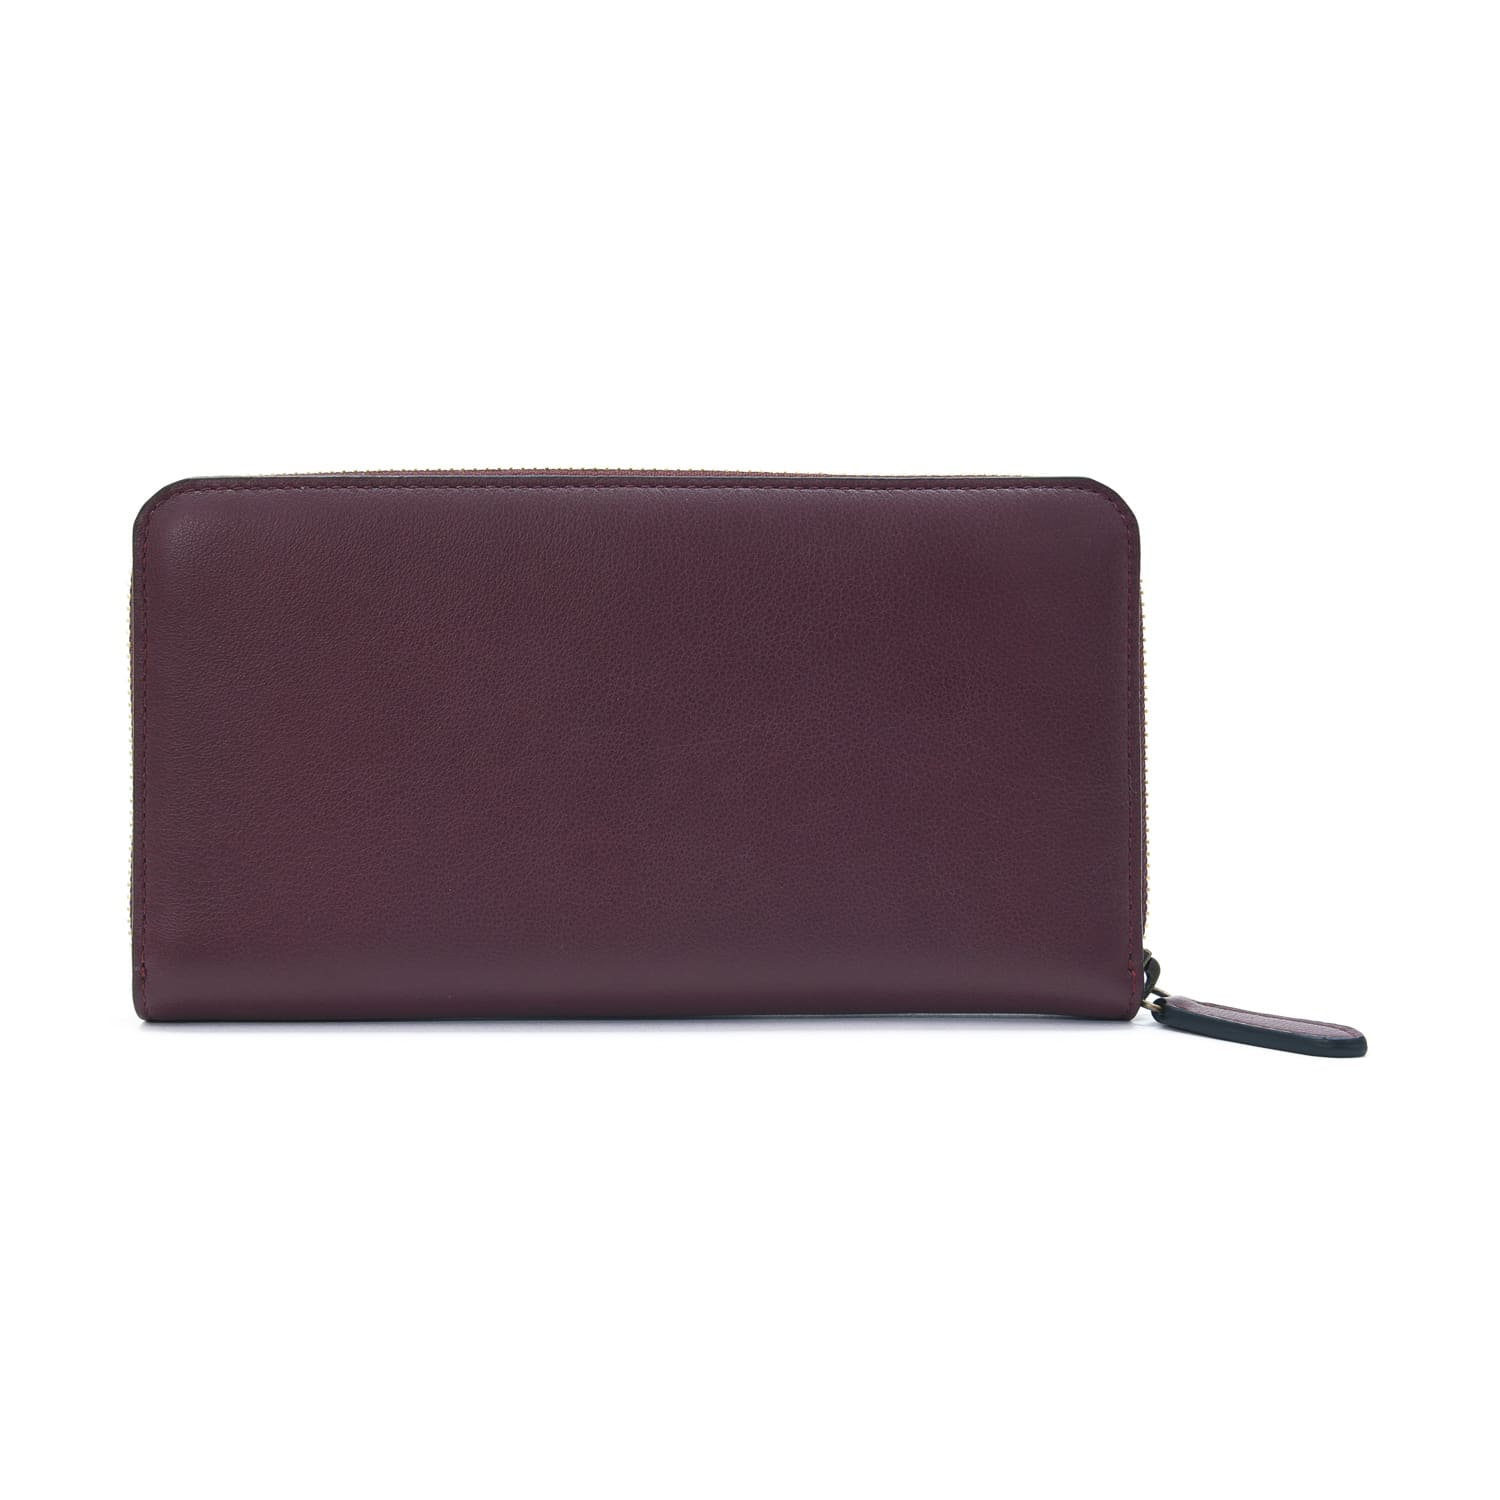 Centenary Leather · Large Zip Around Purse - Oxblood